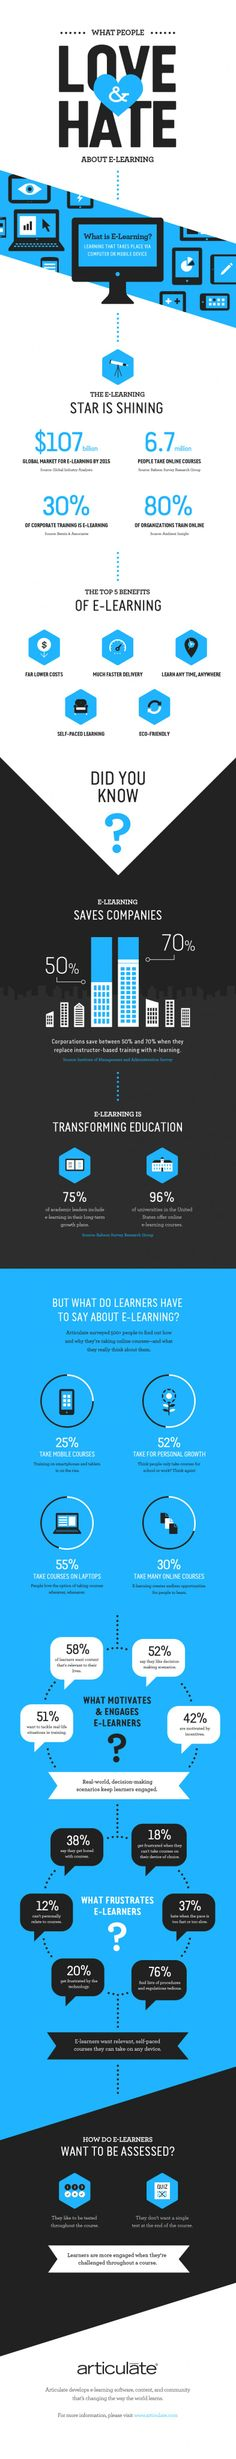 What People Love and Hate about eLearning Infographic | e-Learning Infographics